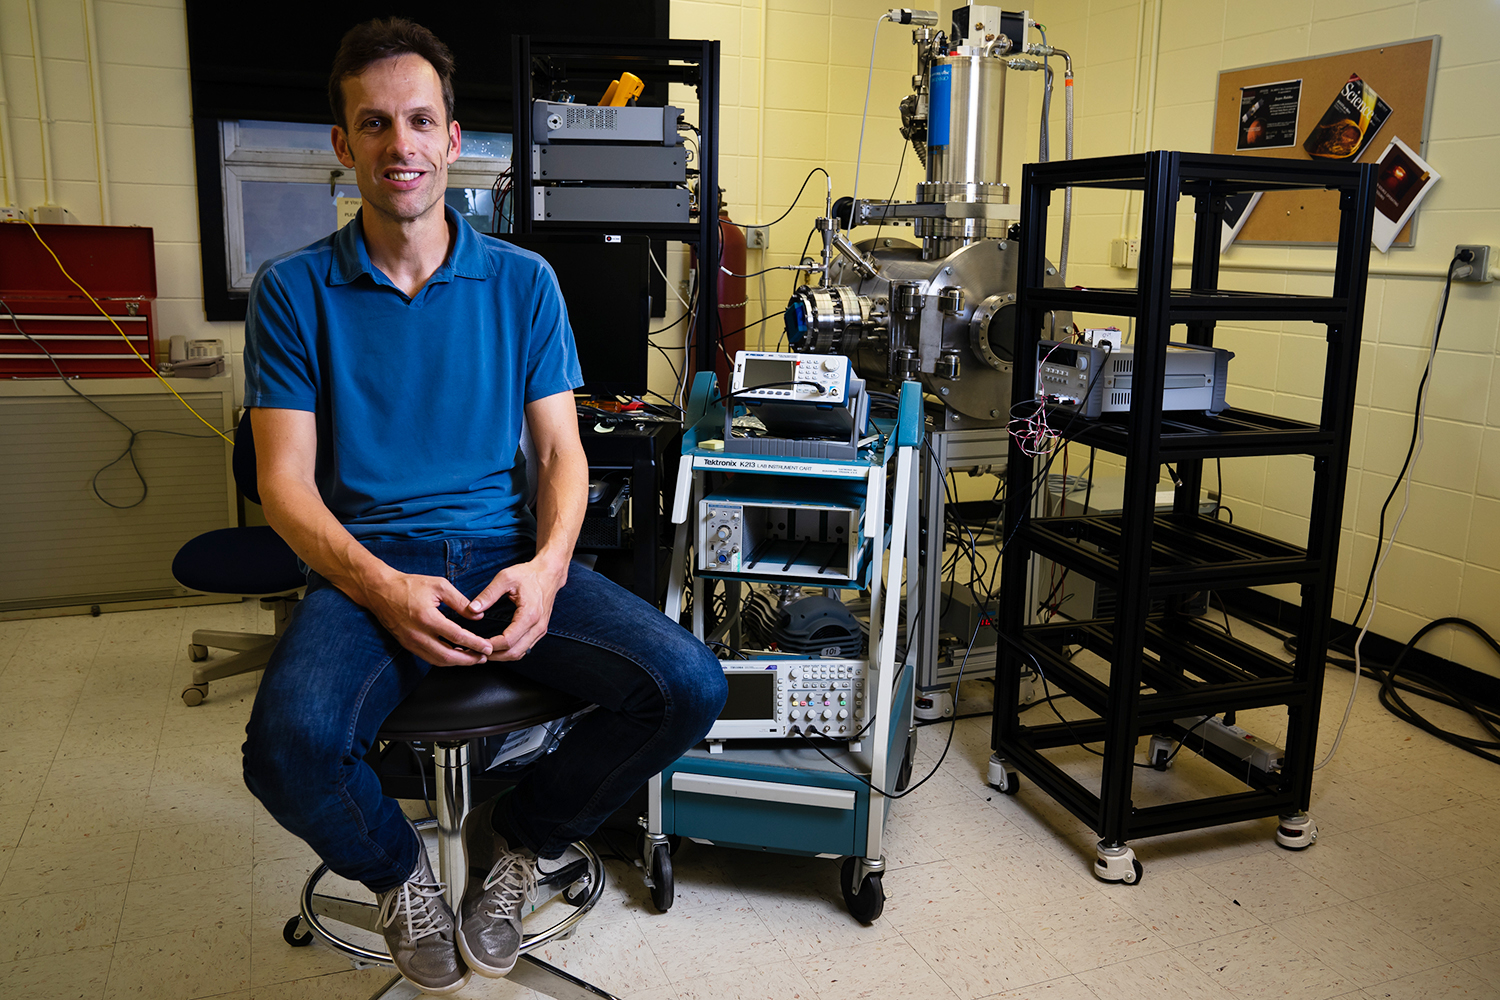 Dr Jasper Halekas poses for a portrait in his lab in Van Allen Hall on Friday, August 24, 2018. Halekas is a co-investigator on one of the experiments onboard the Parker Solar Probe.